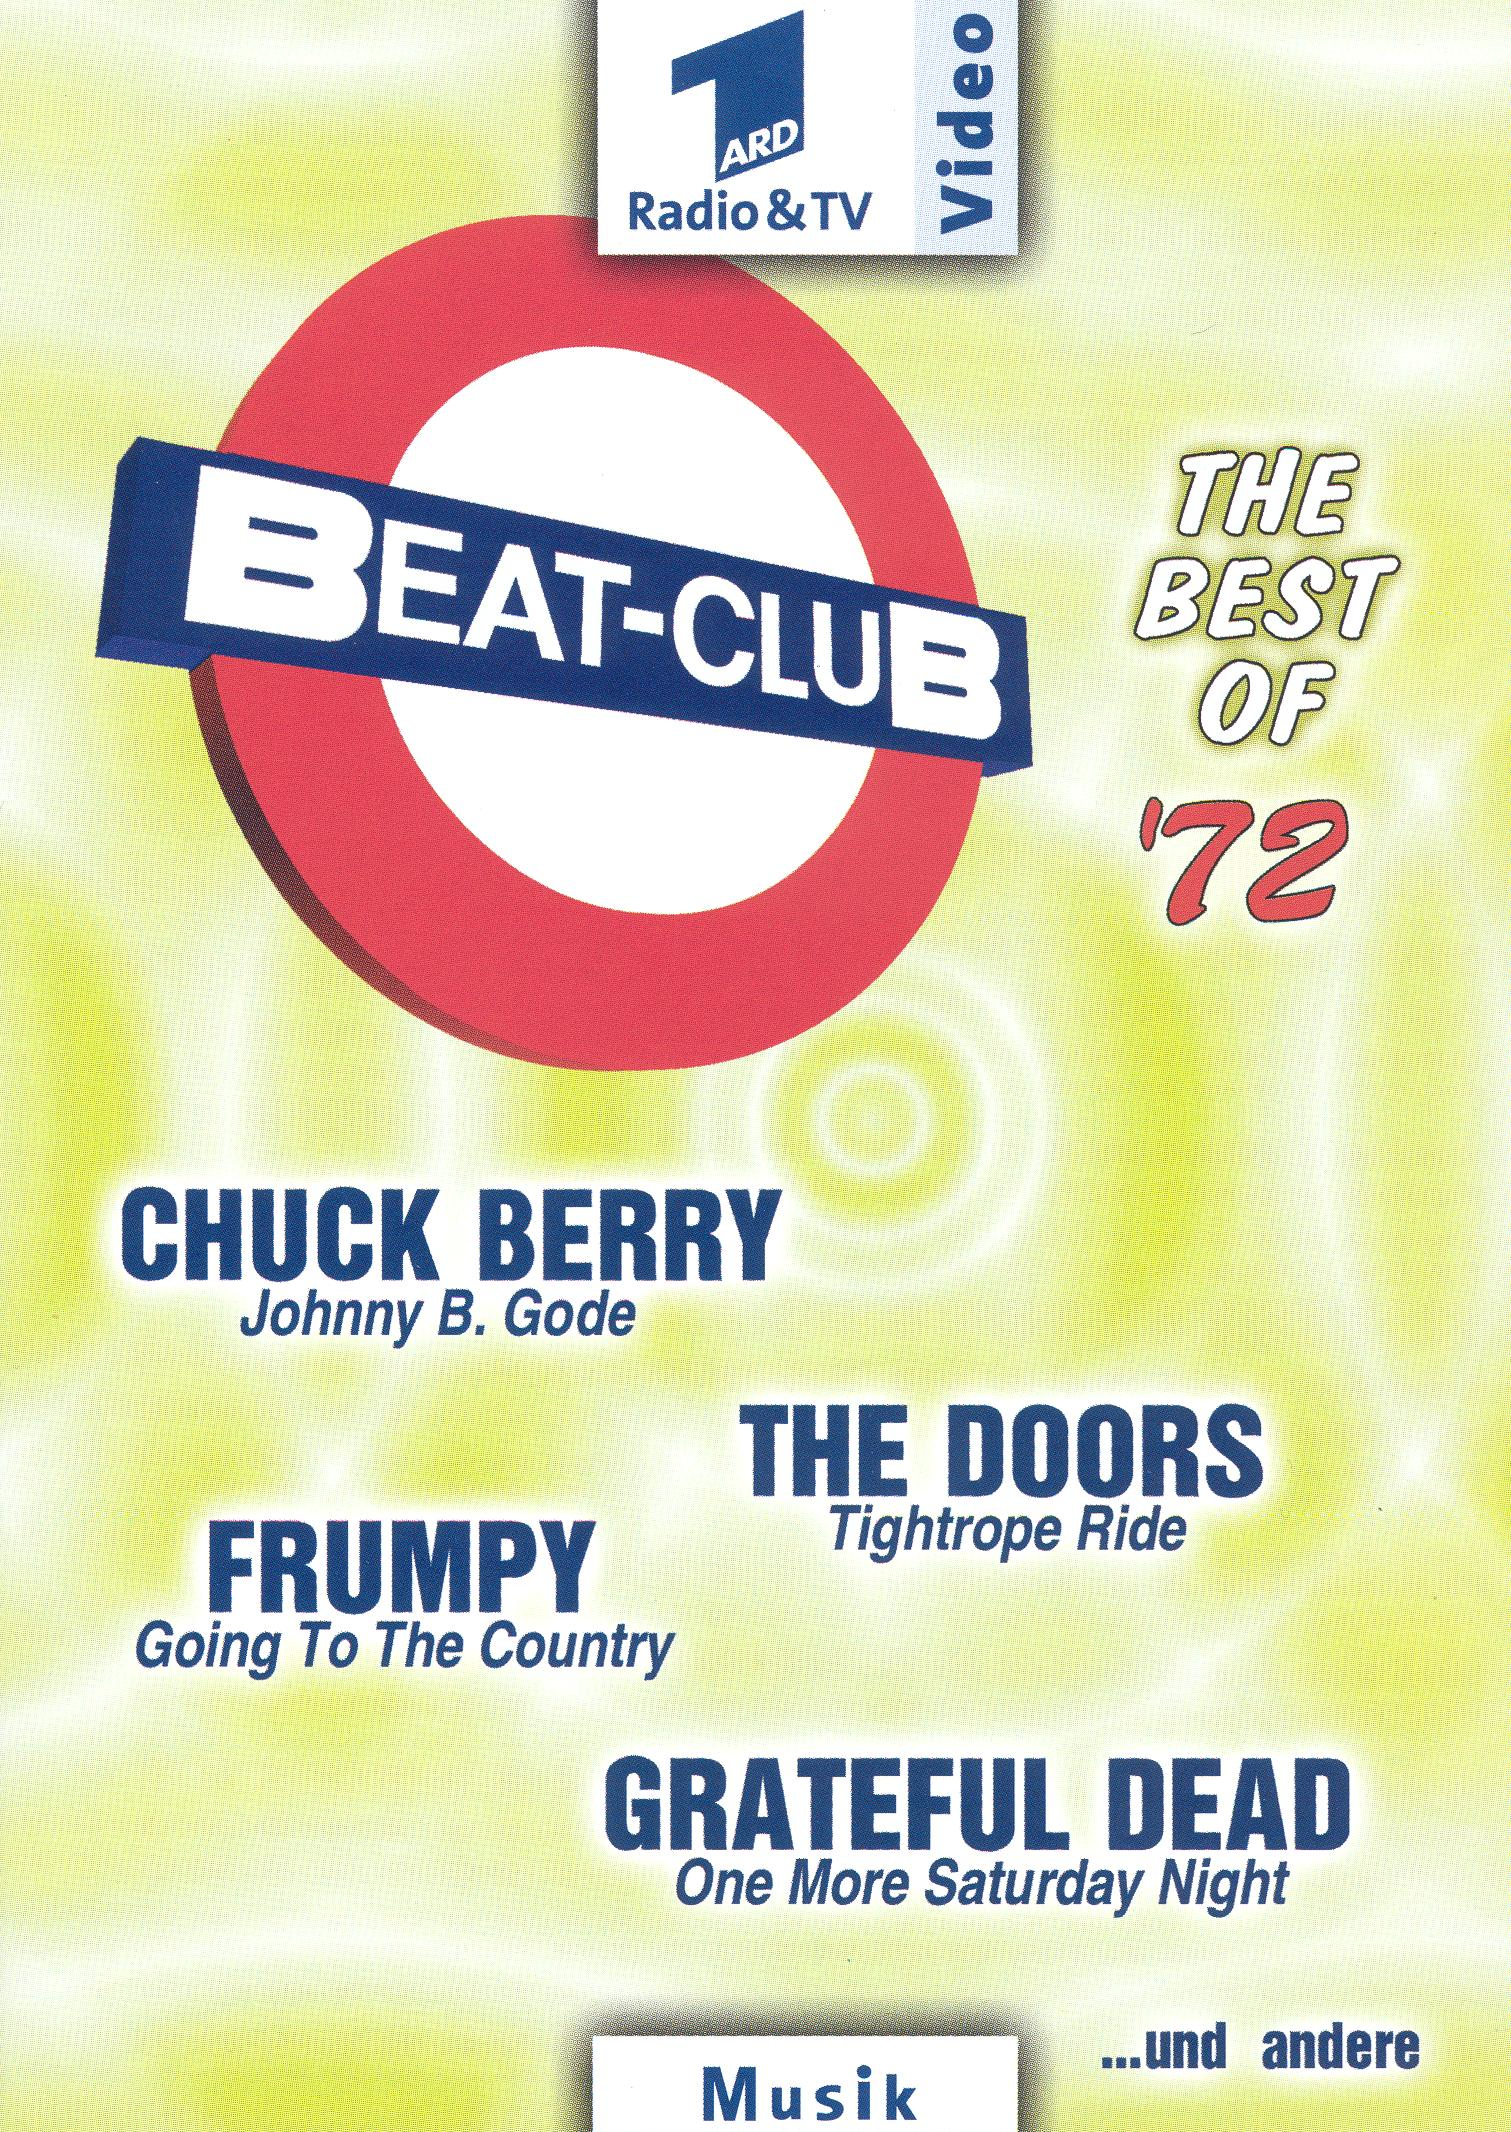 The Beat-Club: The Best of '72